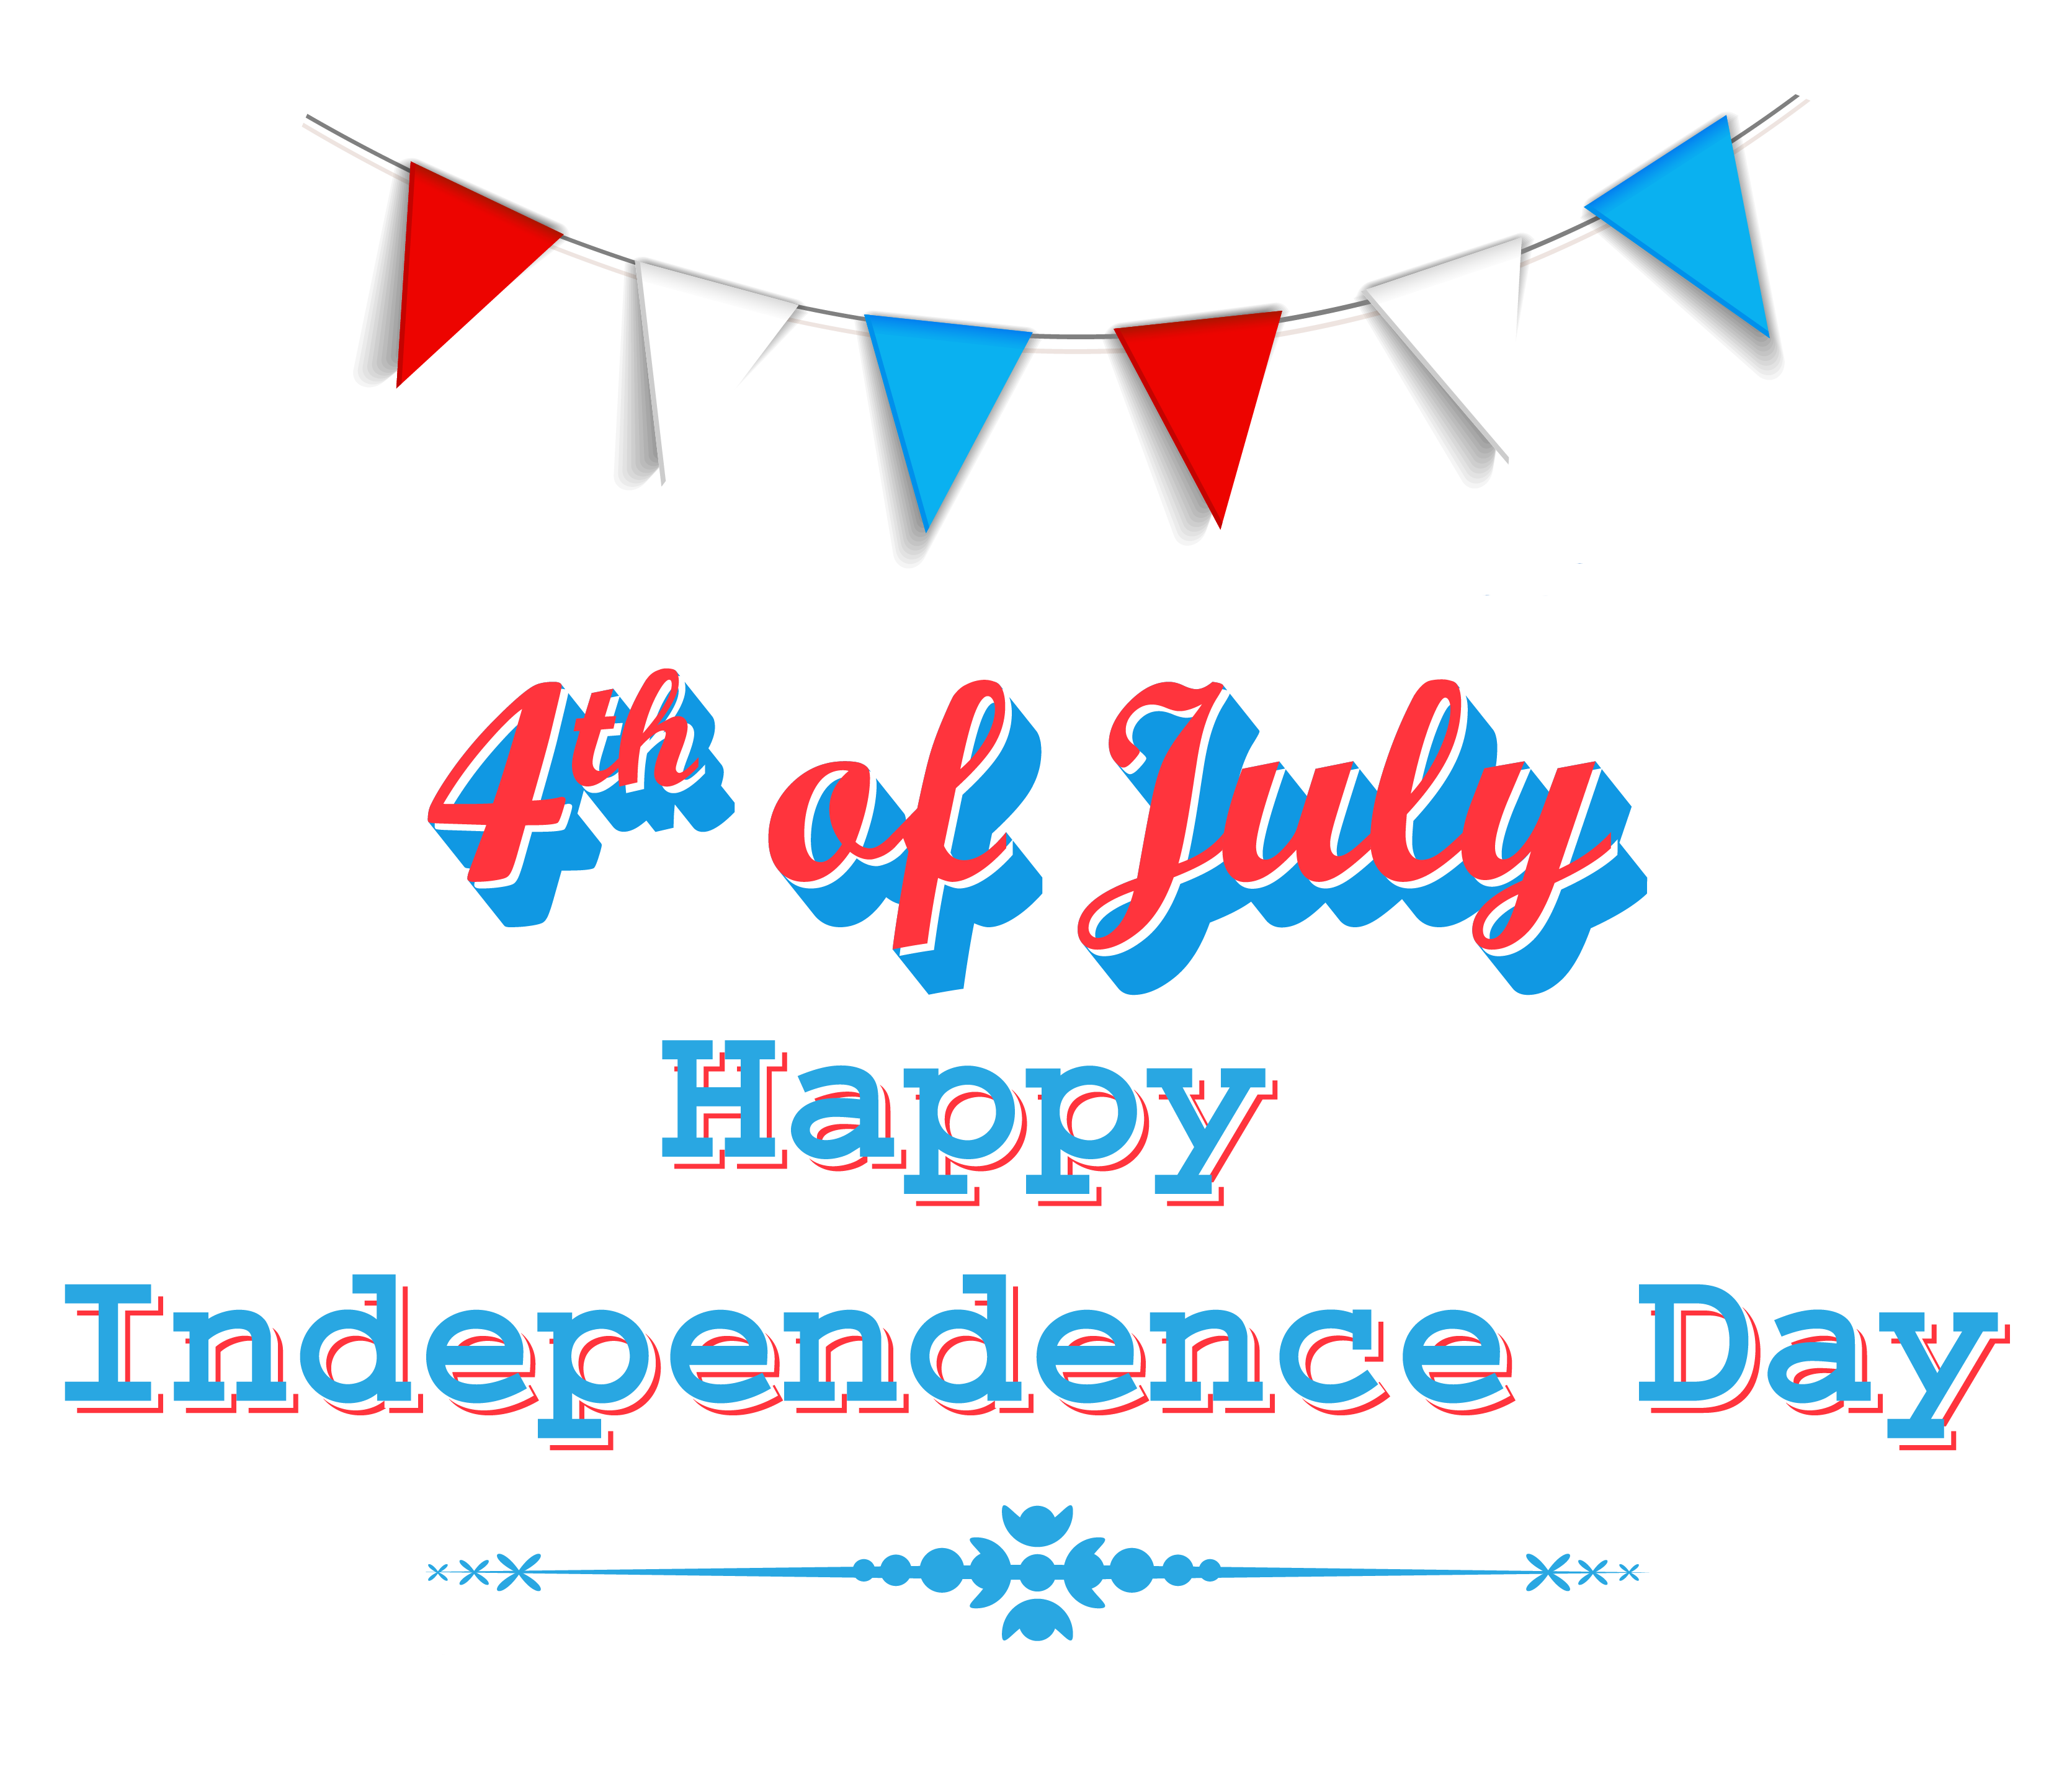 happy 4th of july clipart independence day